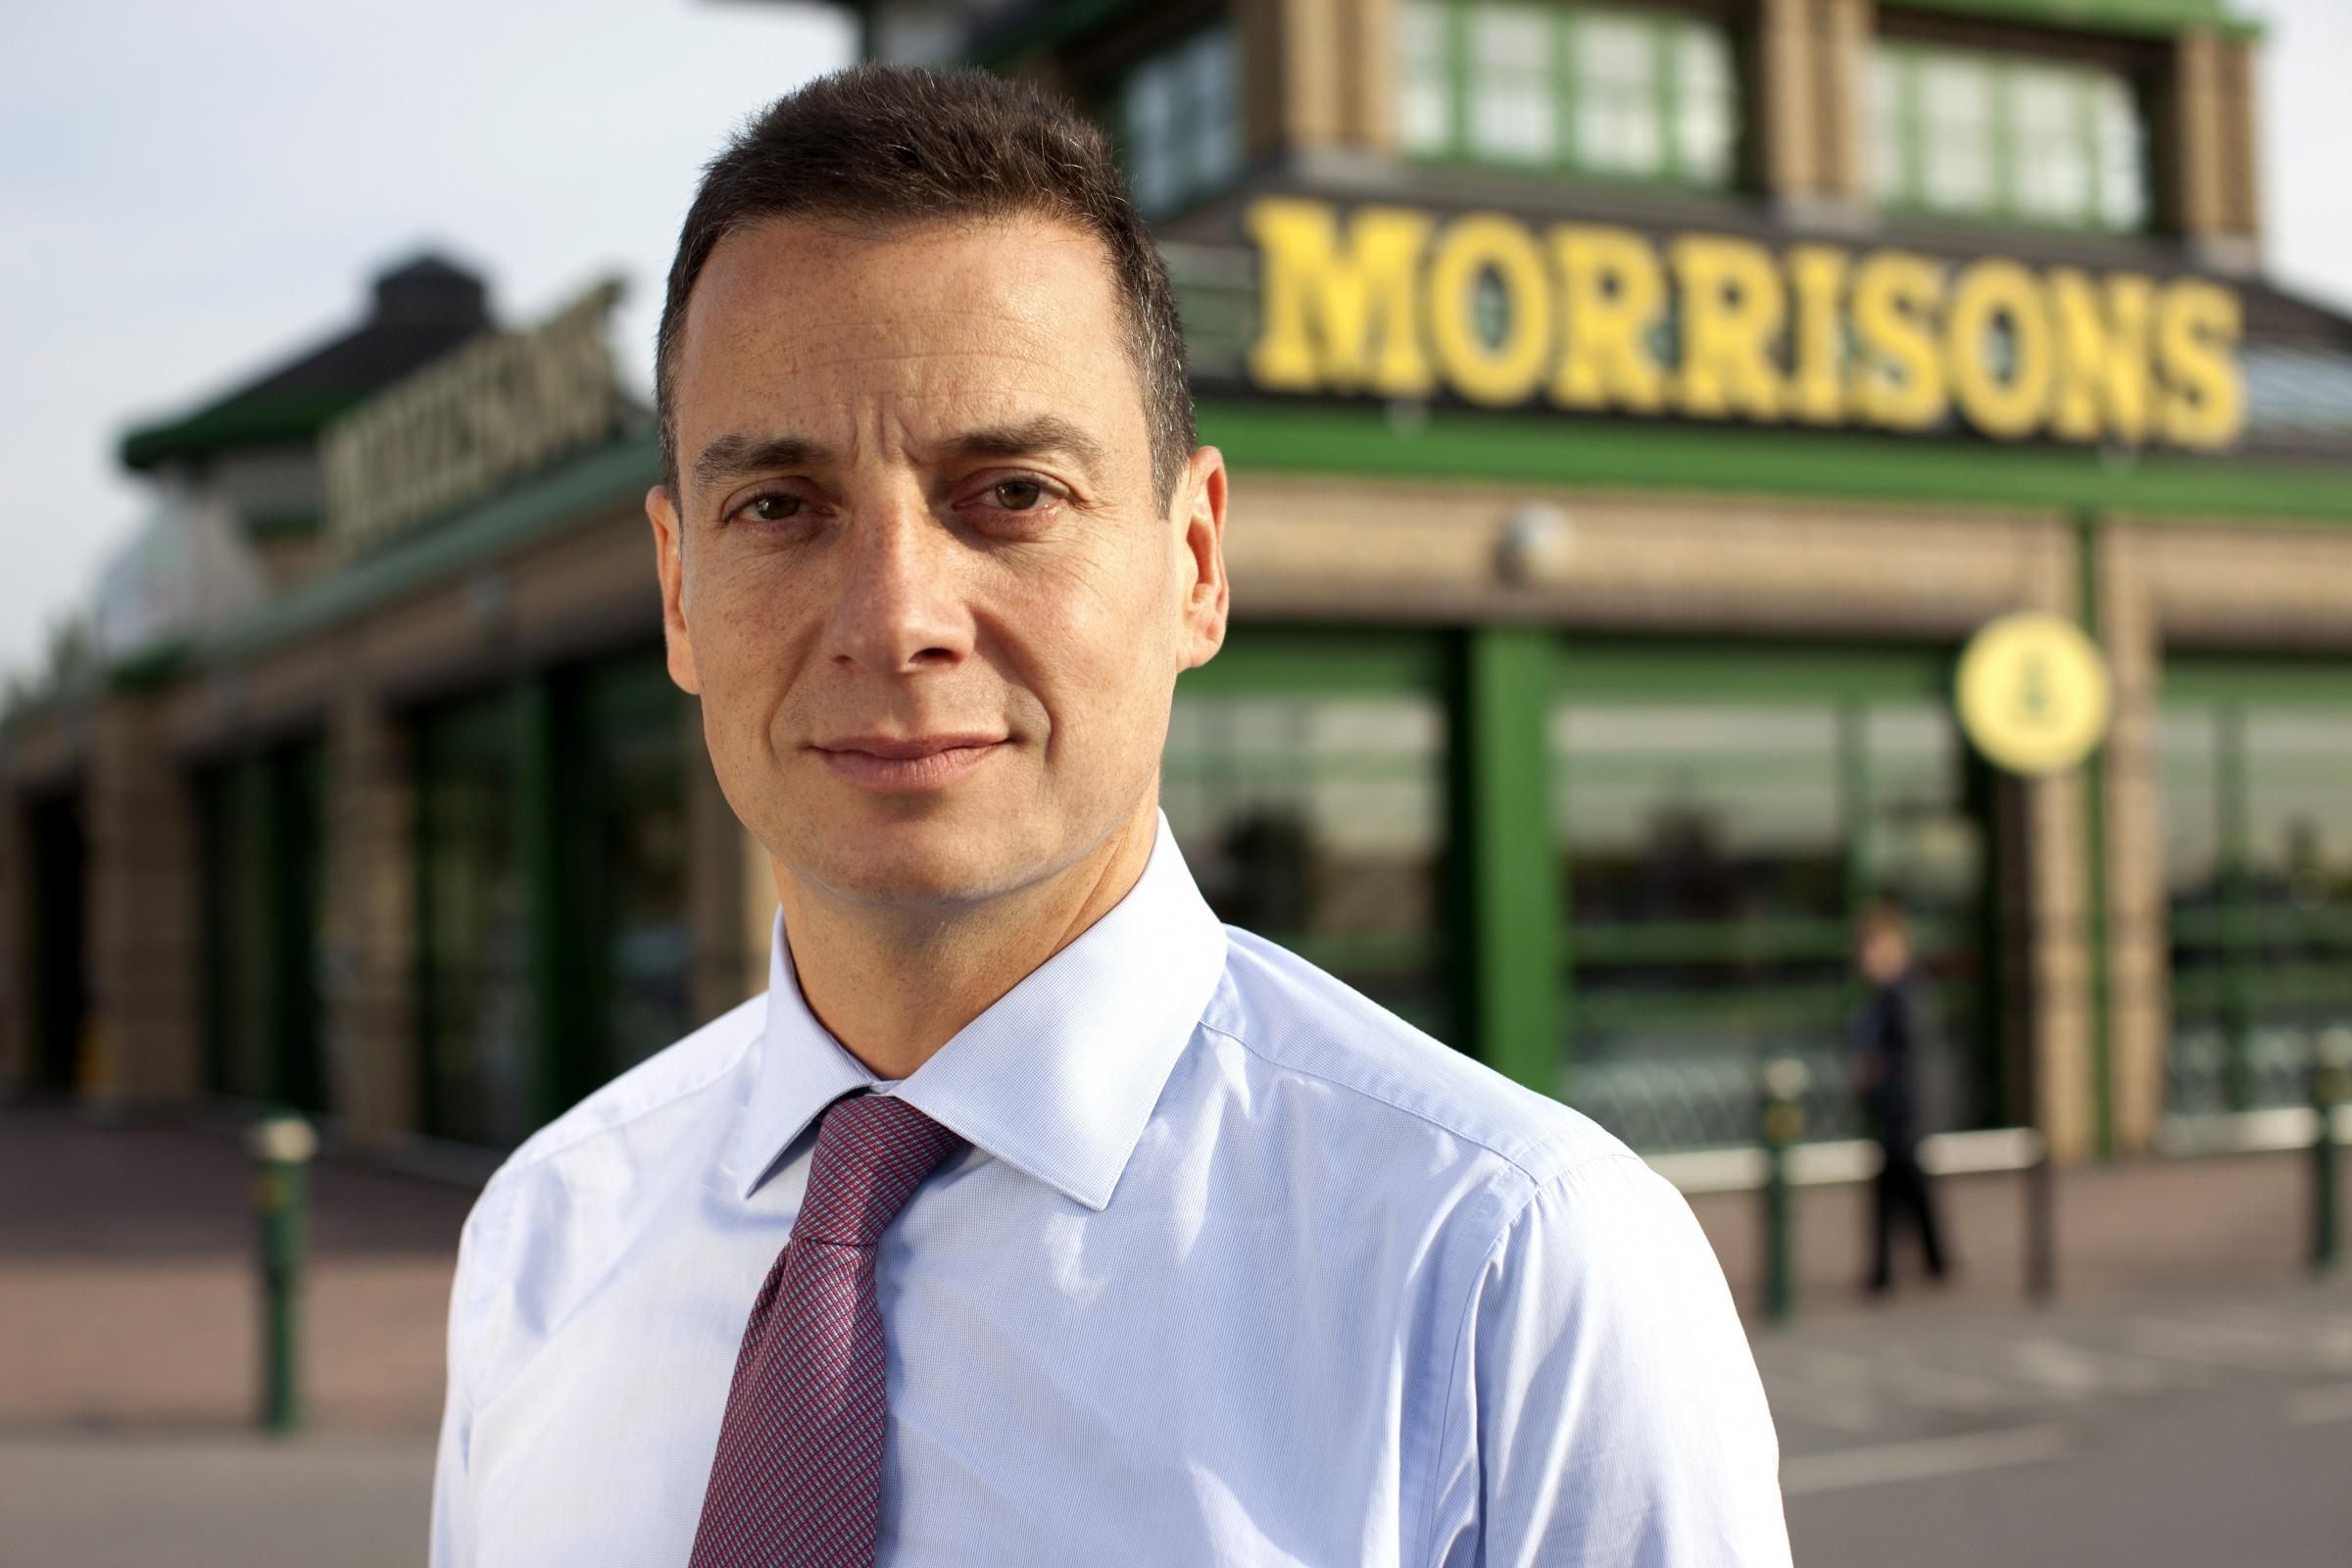 Morrisons set to axe 2,500 store managers in efficiency drive